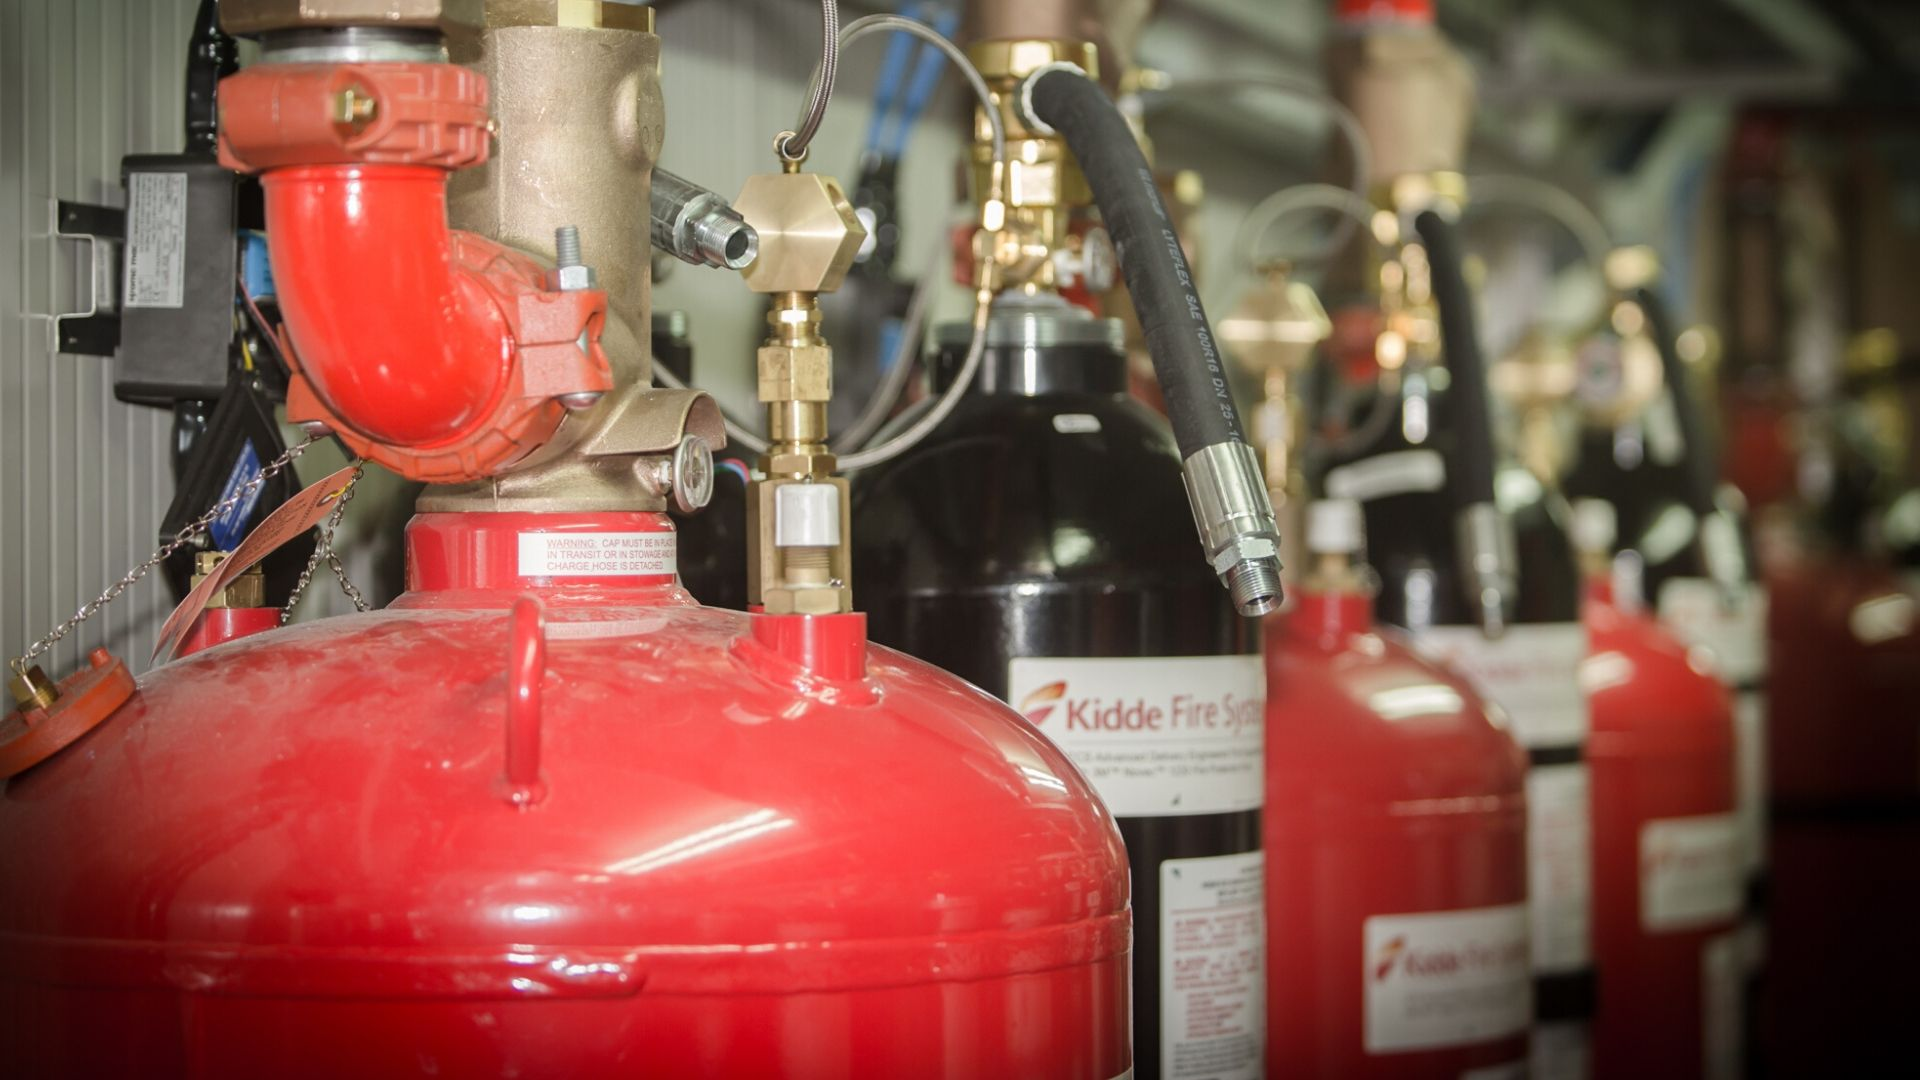 Fire Suppression System_image 3